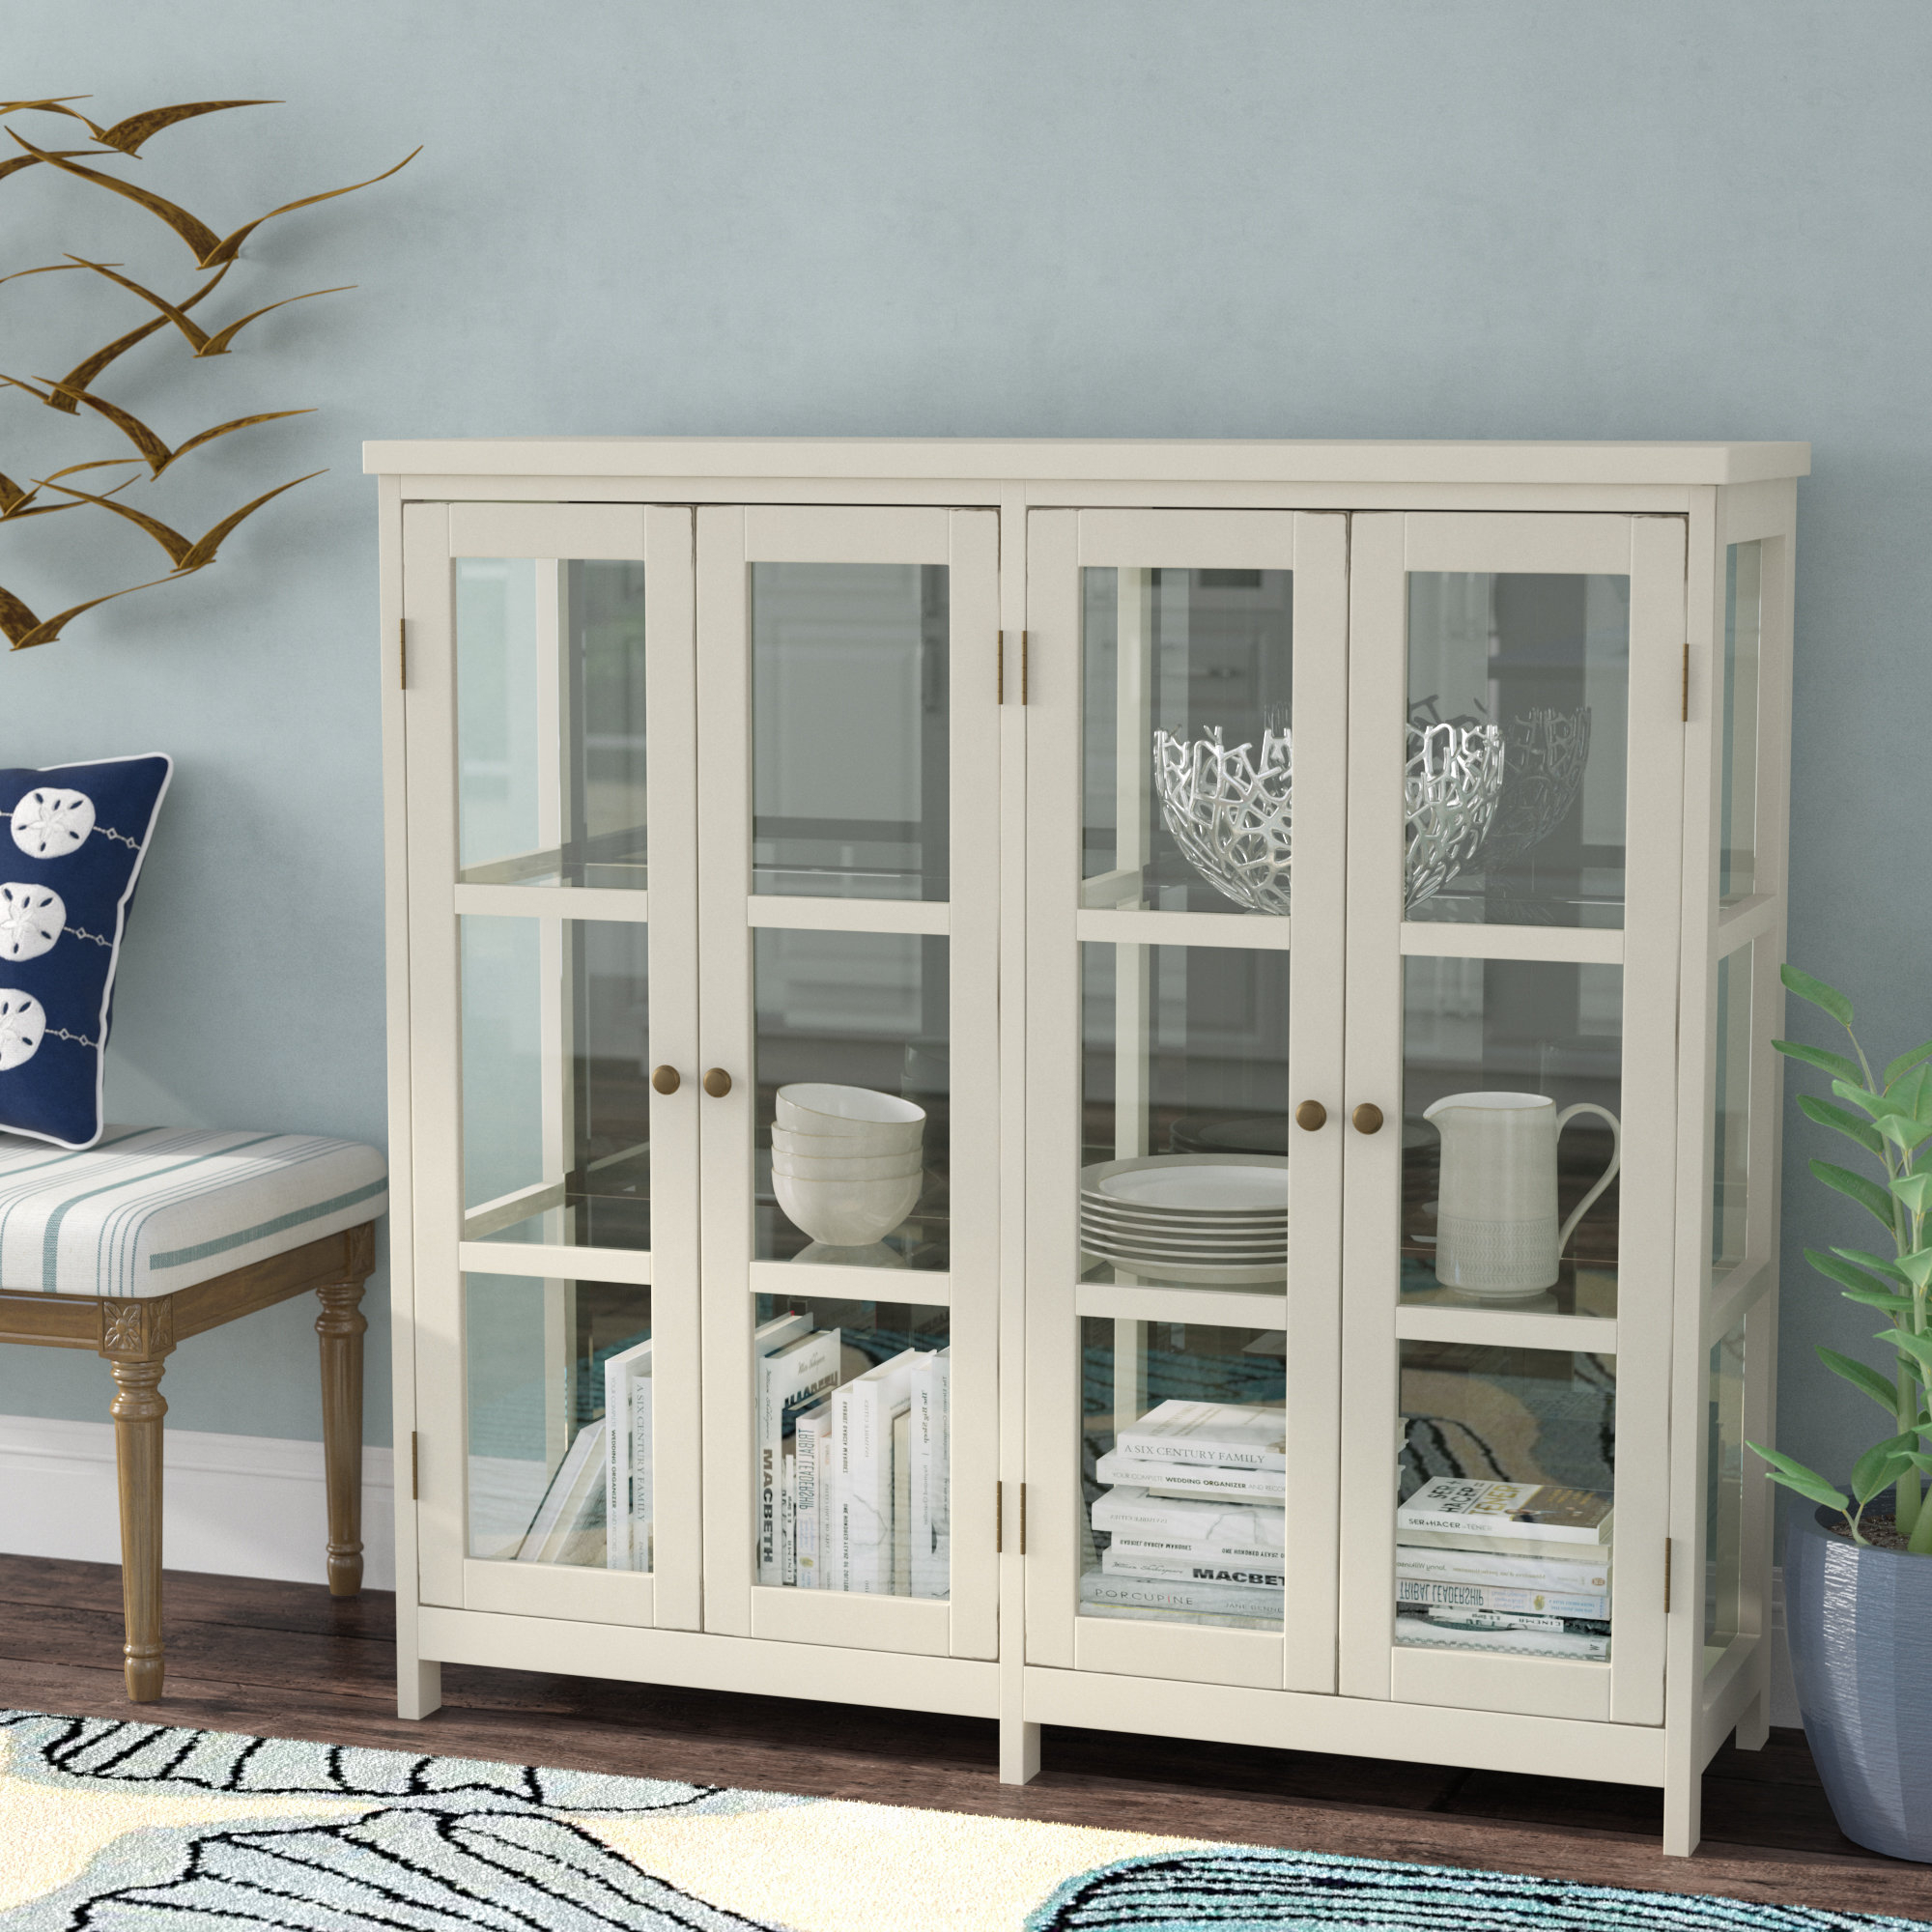 4 Door Accent Cabinet with Eau Claire 6 Door Accent Cabinets (Image 1 of 30)